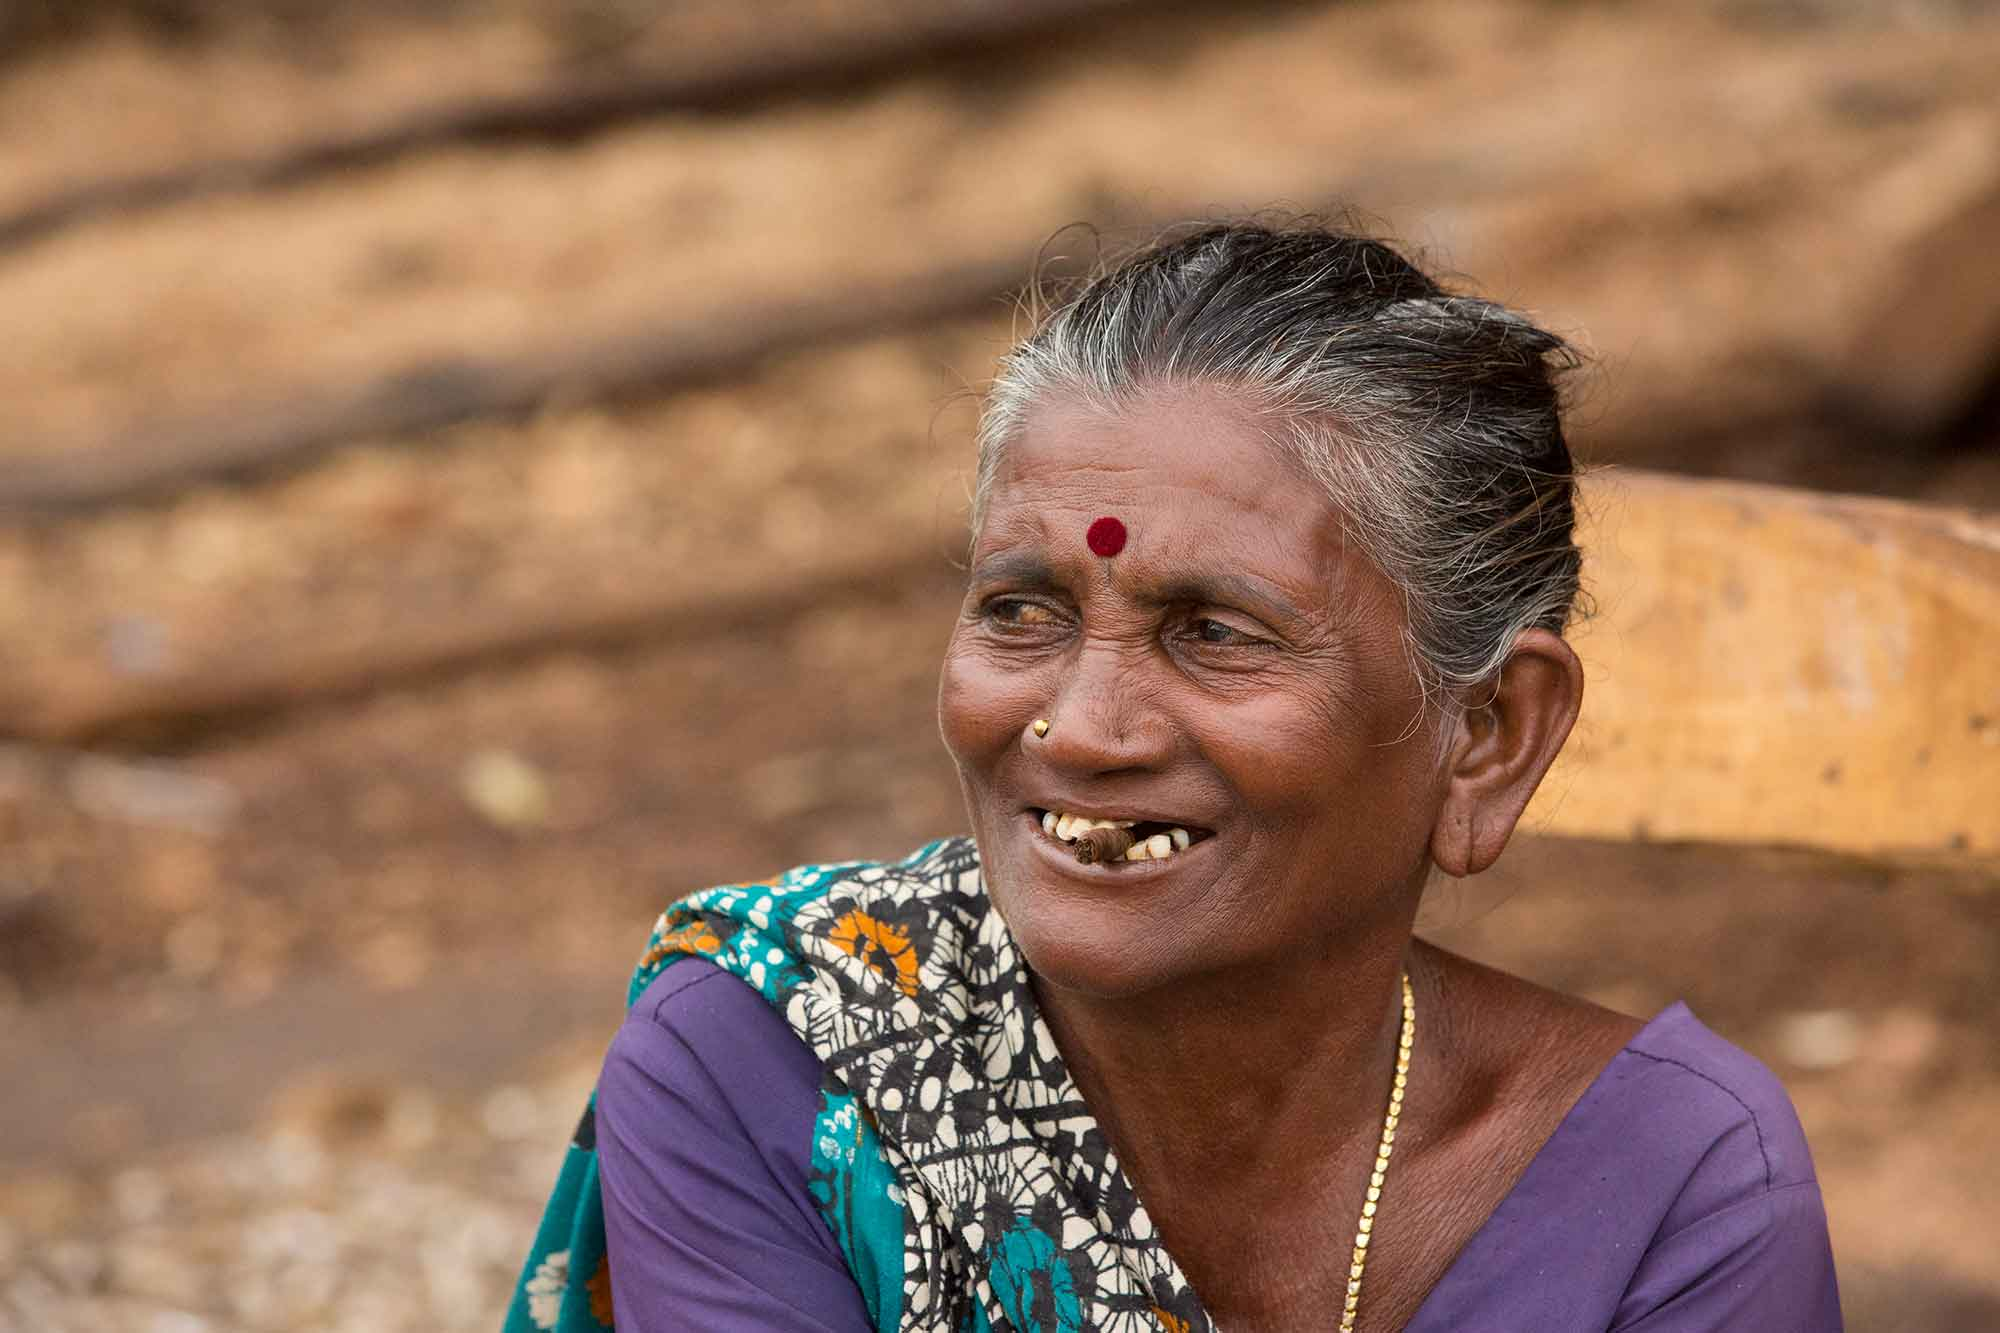 portrait-market-woman-visakhapatnam-india